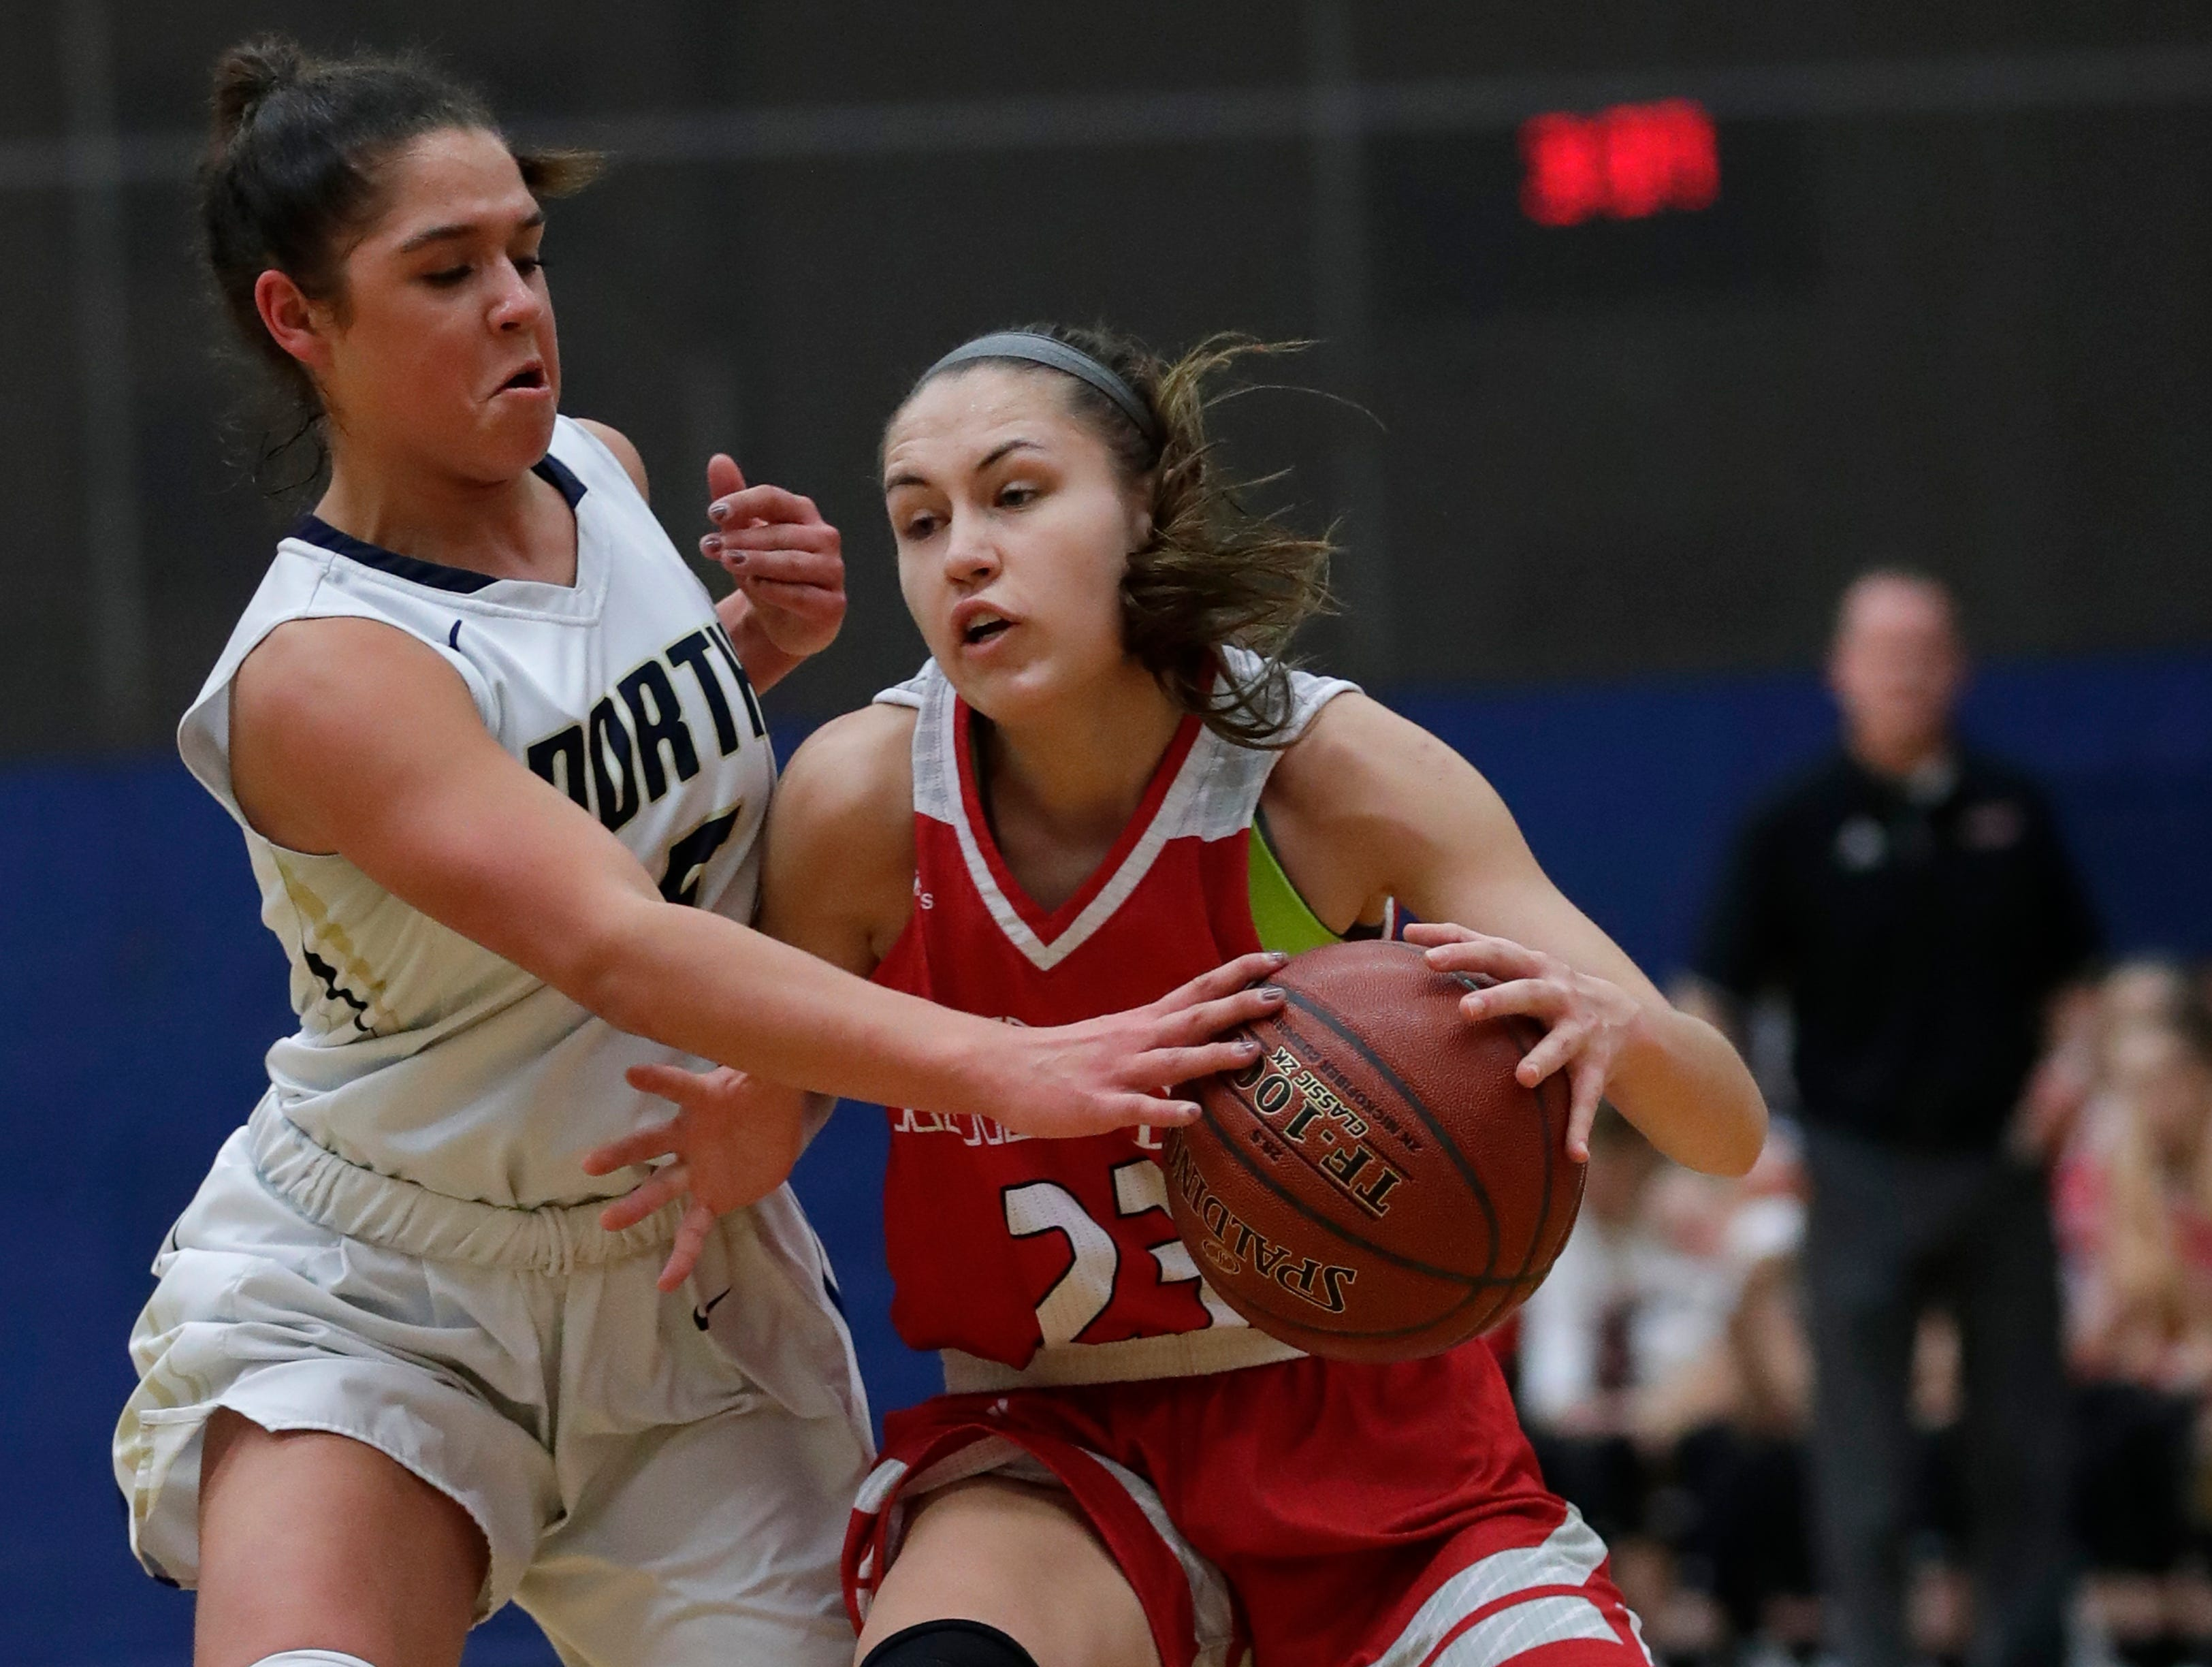 Appleton North High School's Niki Van Wyk (5) defends against Kimberly High School's Bryn Sikora (23) during their girls basketball game Tuesday, January 8, 2019, in Appleton, Wis. Dan Powers/USA TODAY NETWORK-Wisconsin